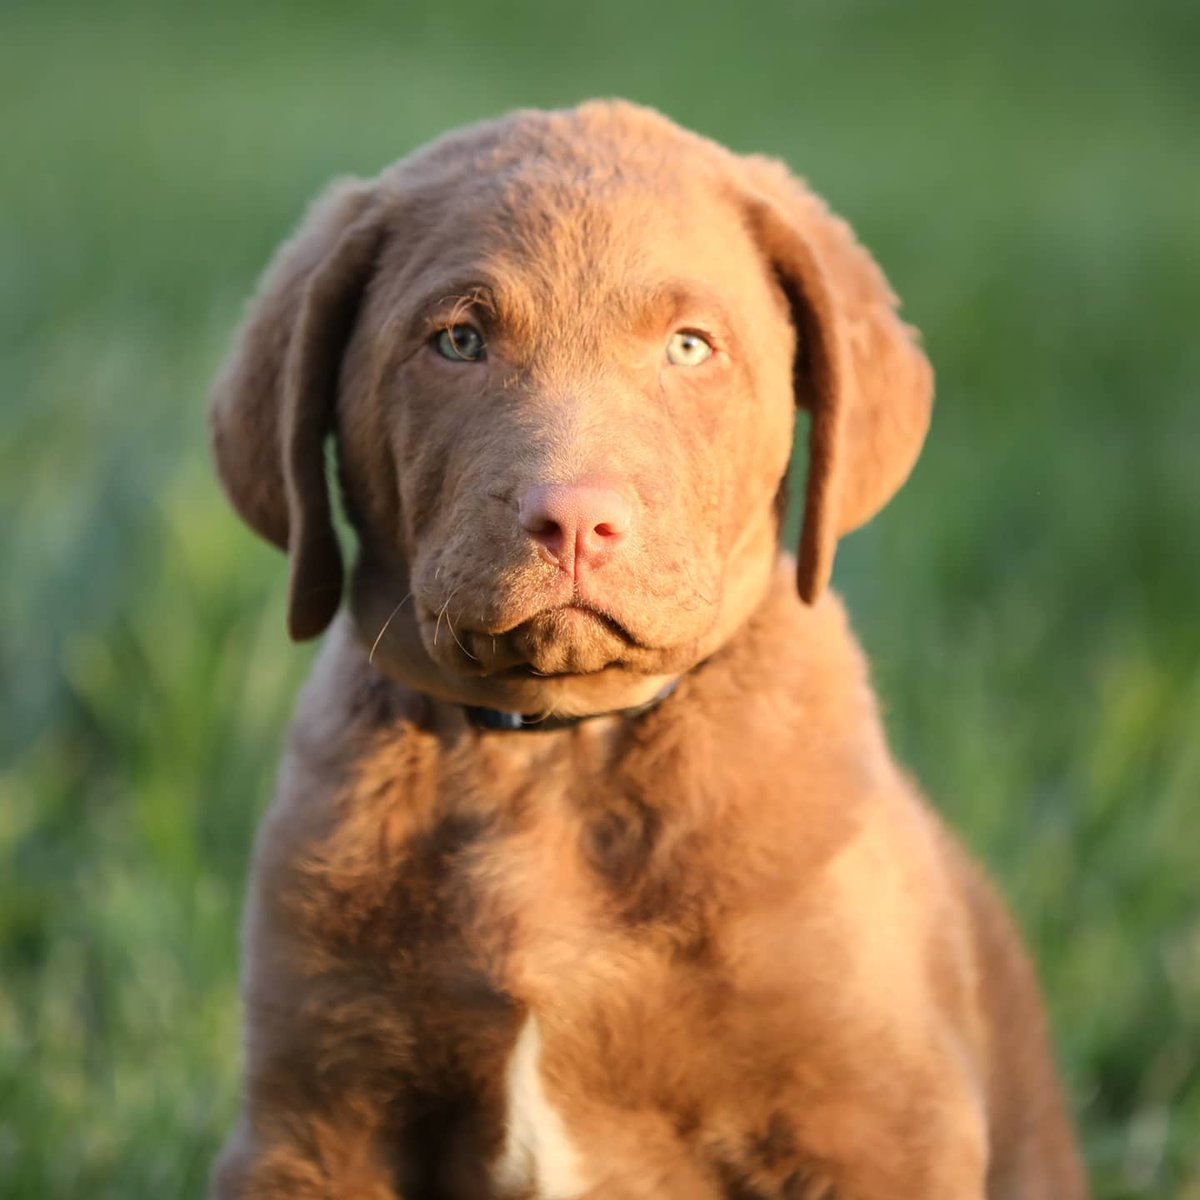 Say hello to Magnus, the newest member of the Caesar Guerini family! Magnus is a Chesapeake Bay Retriever who will be turning nine weeks old and already a beloved addition to the team here at the office. #CaesarGuerini #chesapeakbayretriever #retriever #puppypic.twitter.com/AmcXKuFVEw